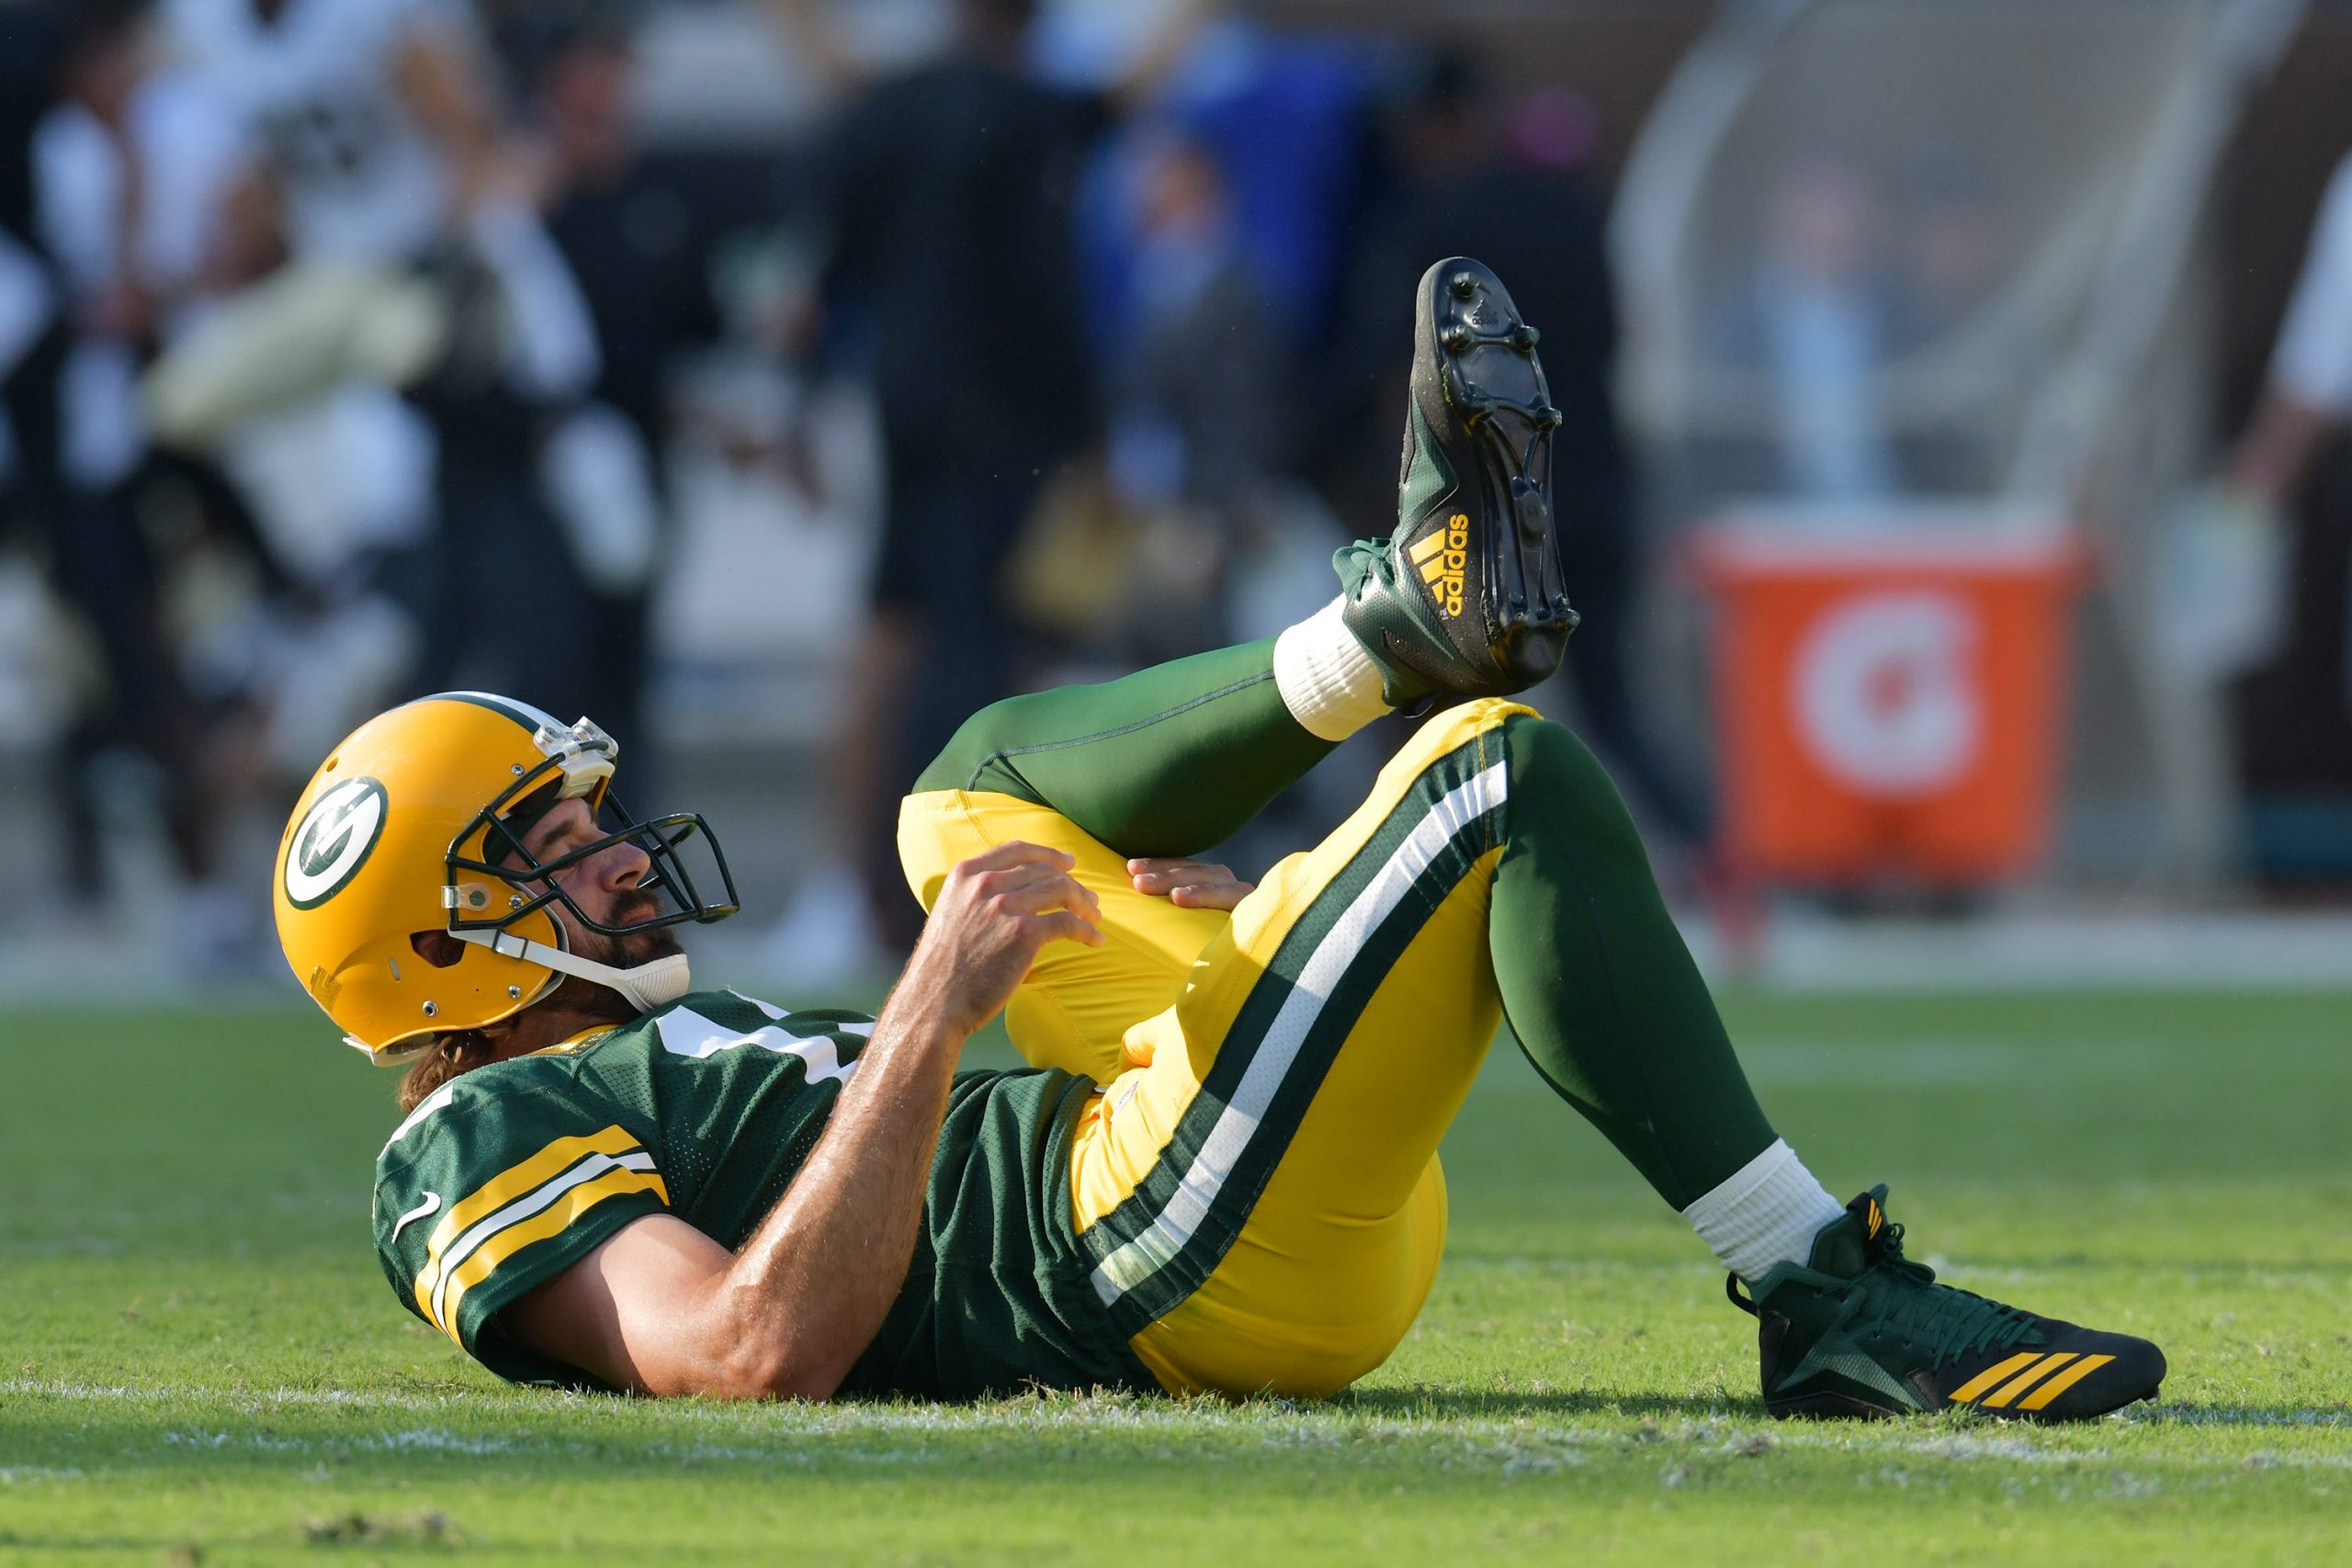 Green Bay Packers quarterback Aaron Rodgers (12) on the turf after throwing a pass that was intercepted by New Orleans Saints cornerback Paulson Adebo (29) during early third quarter action.